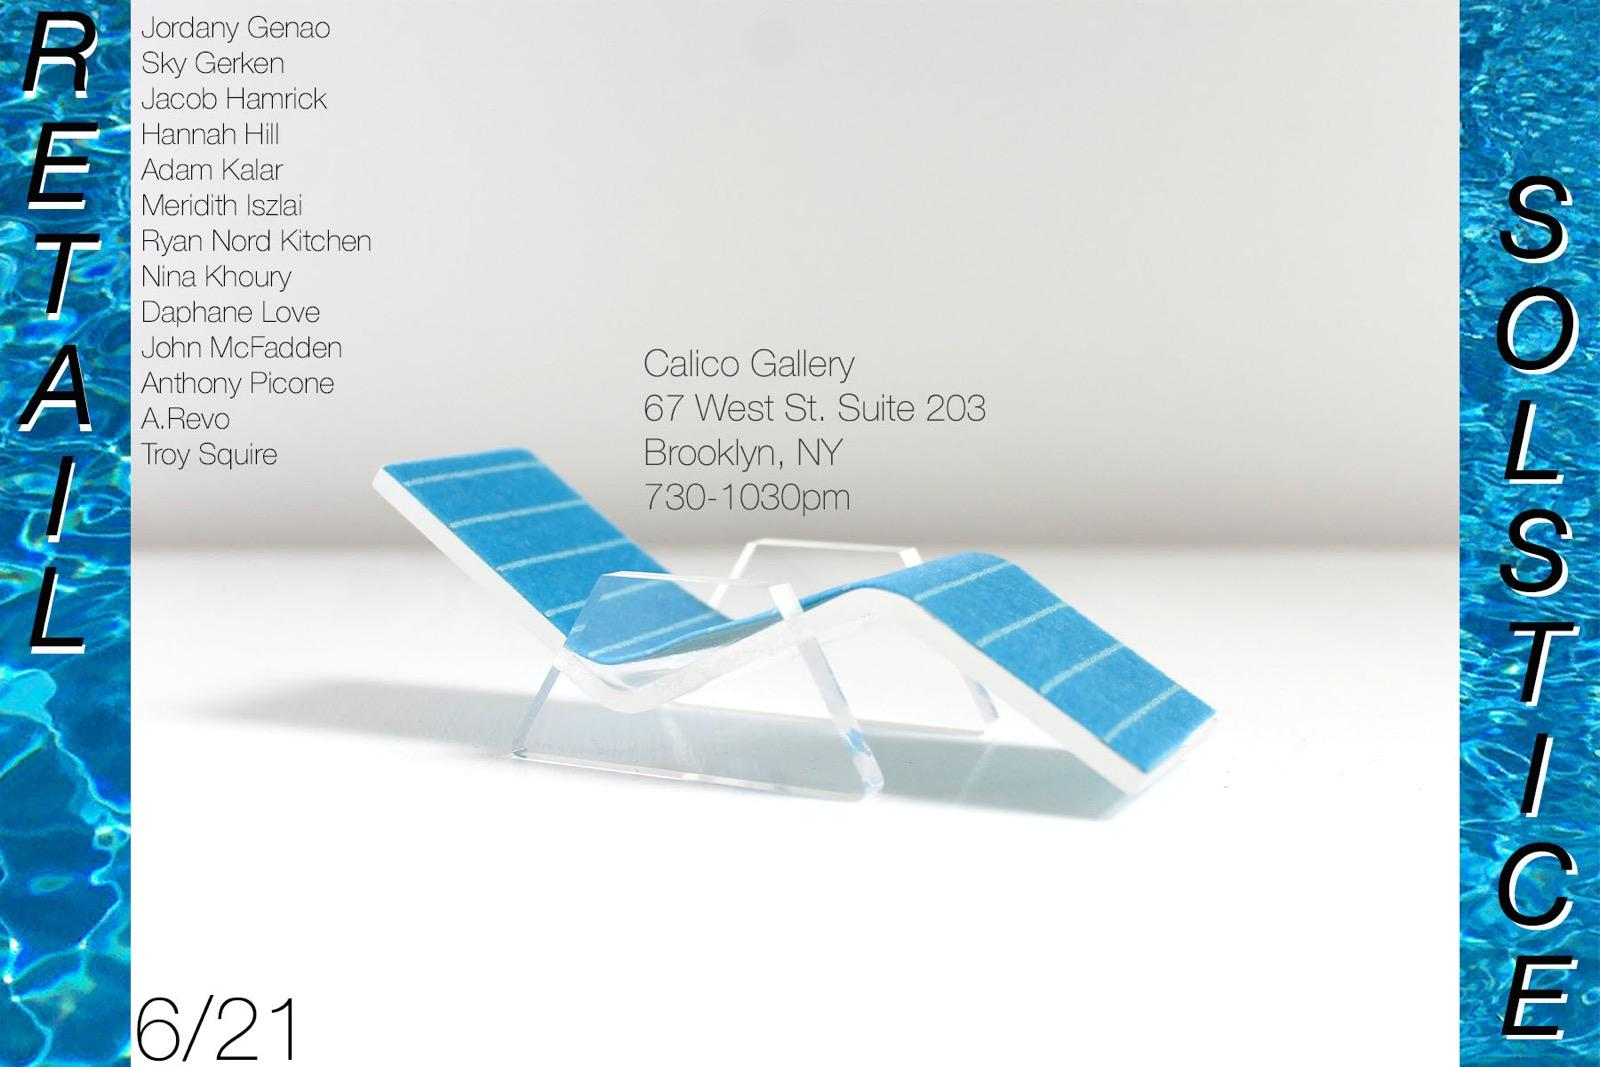 Flier for  Retail Solstice  Pop-Up Show at Calico Gallery